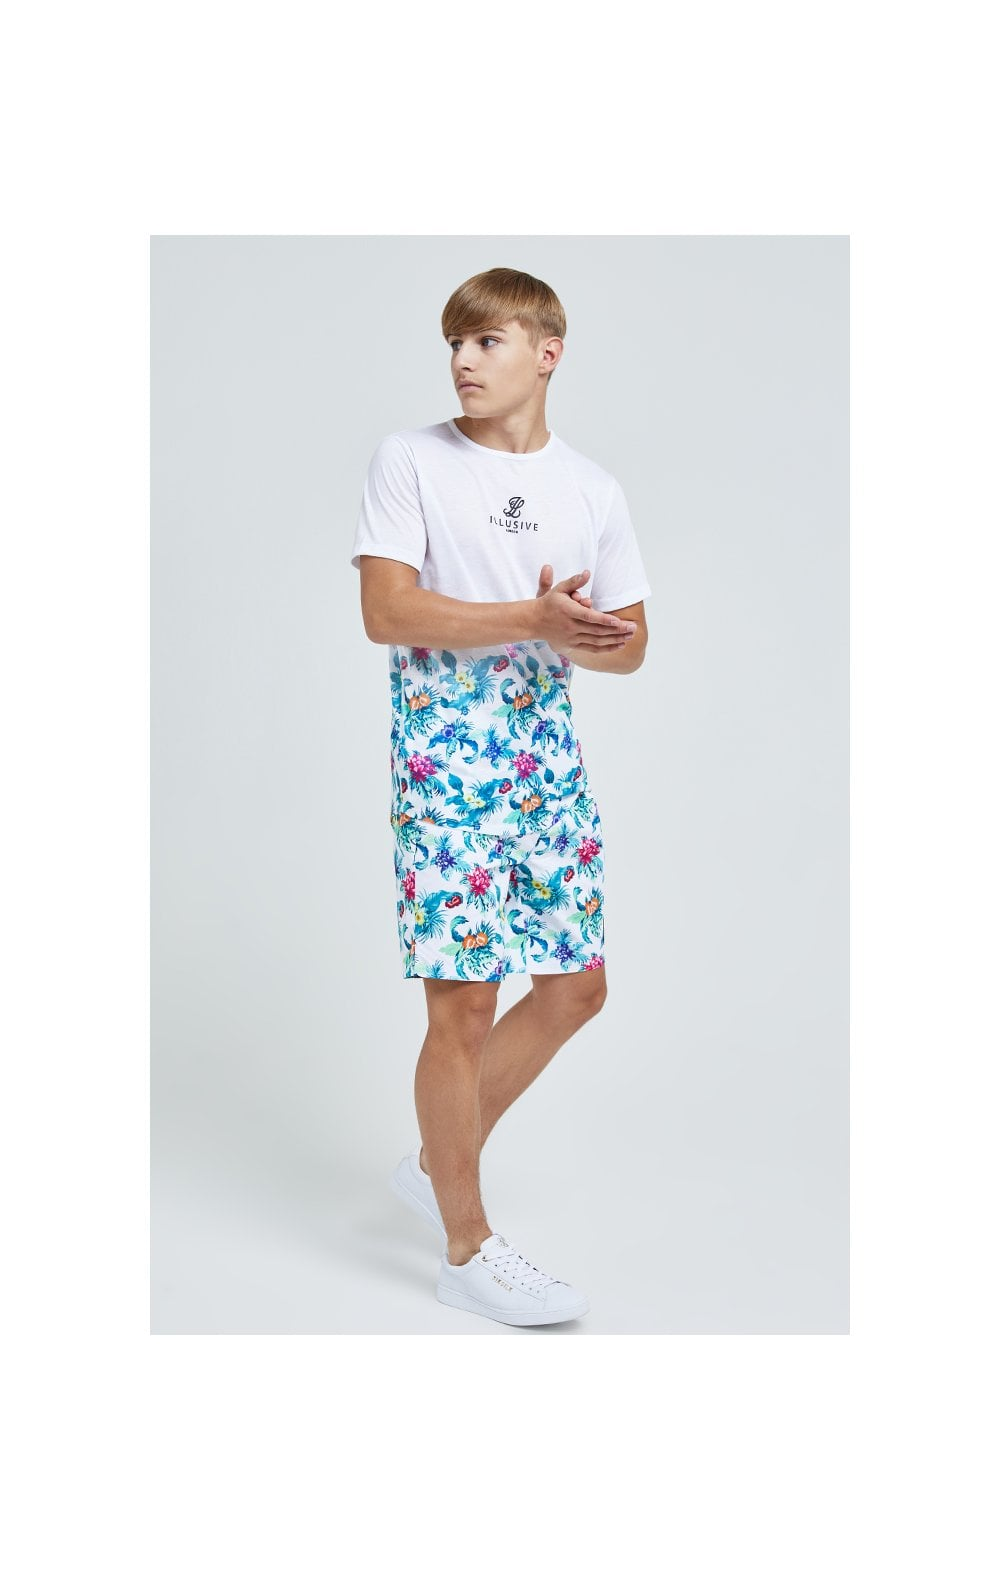 Illusive London Swim Shorts - White & Floral (6)